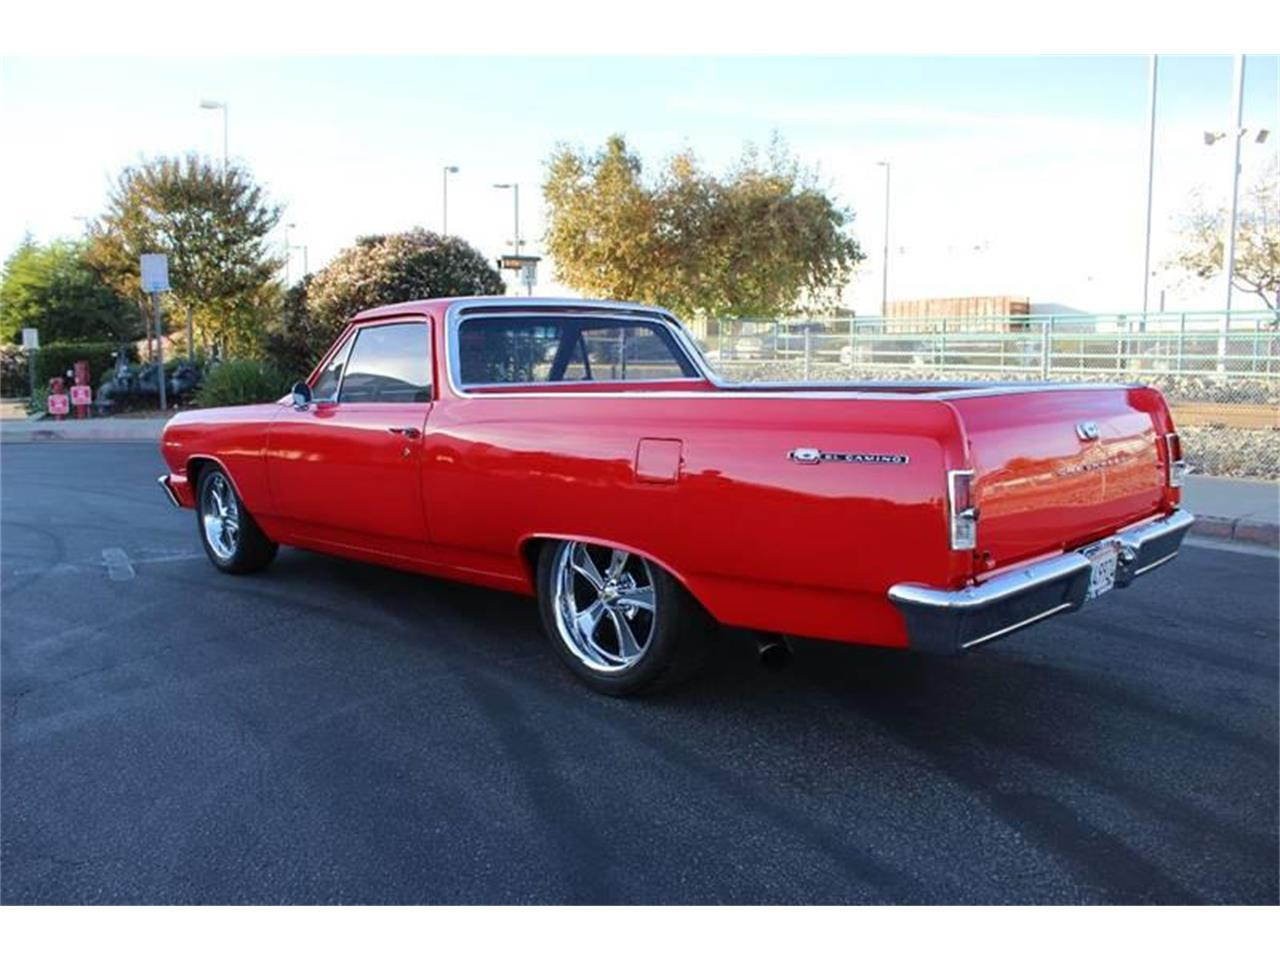 Large Picture of '64 Chevrolet El Camino located in California - $26,900.00 - MH9D